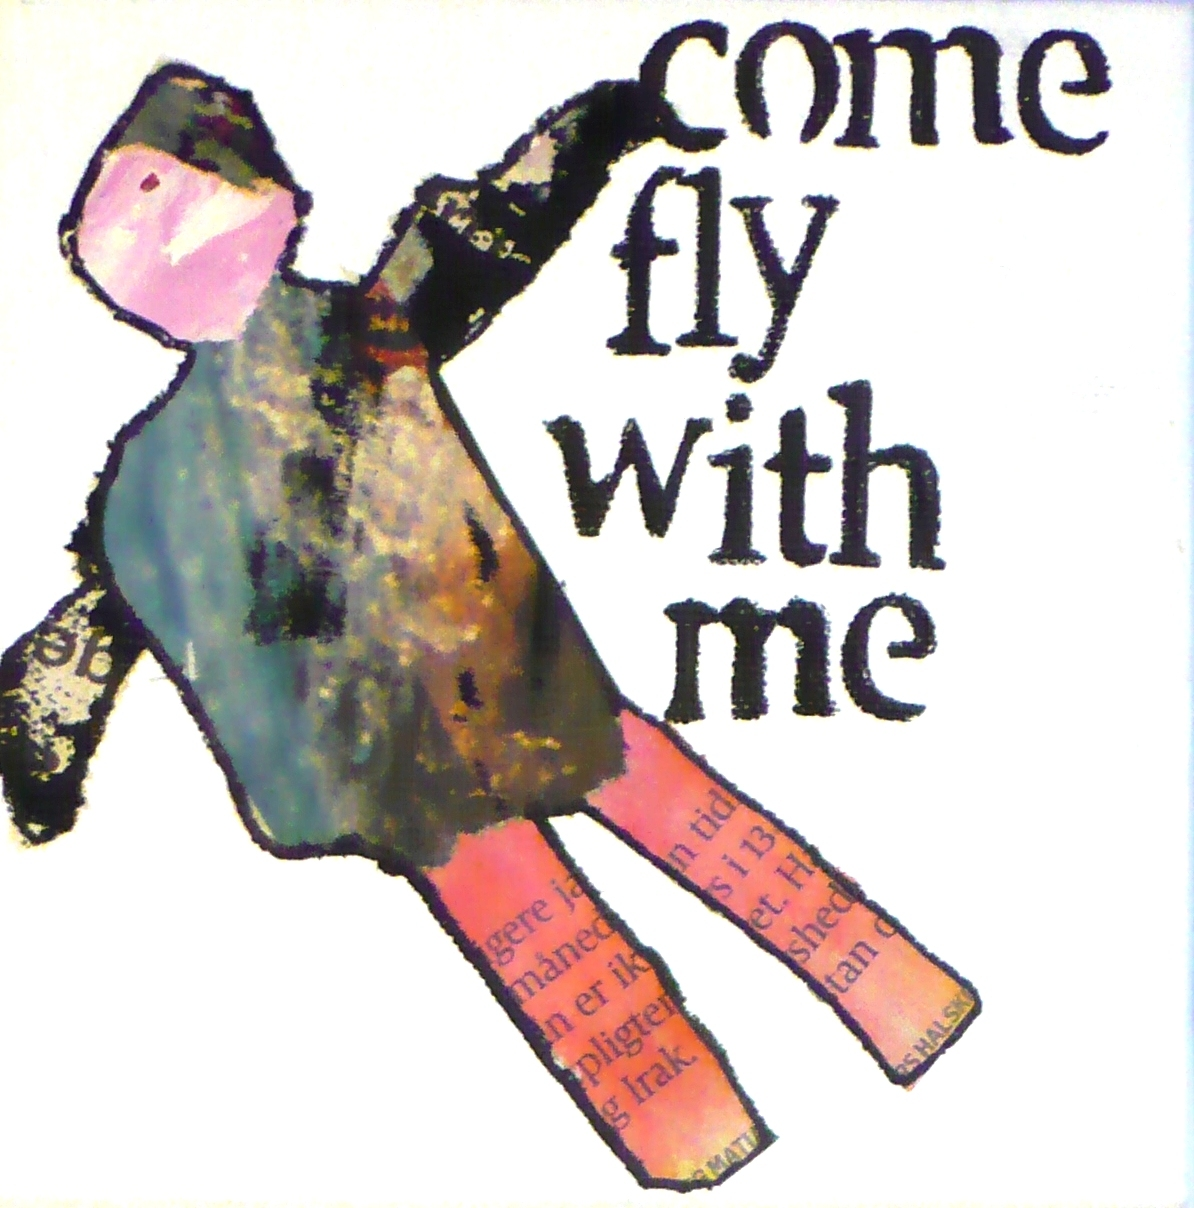 Fly with me 2.JPG